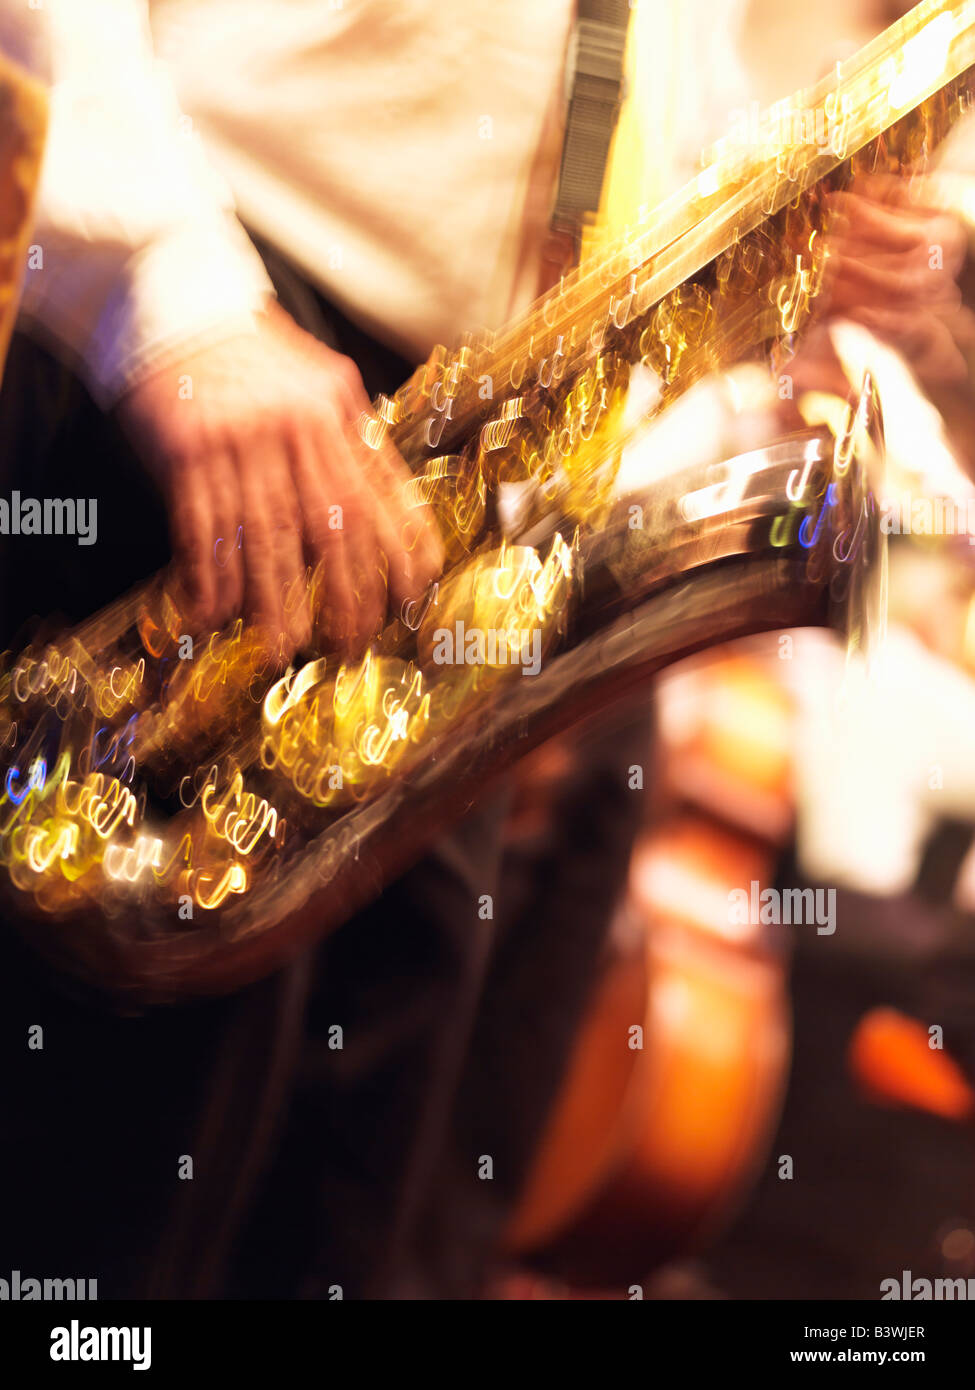 USA,Louisiana,New Orleans,French Quarter, jazz musician playing saxophone - Stock Image